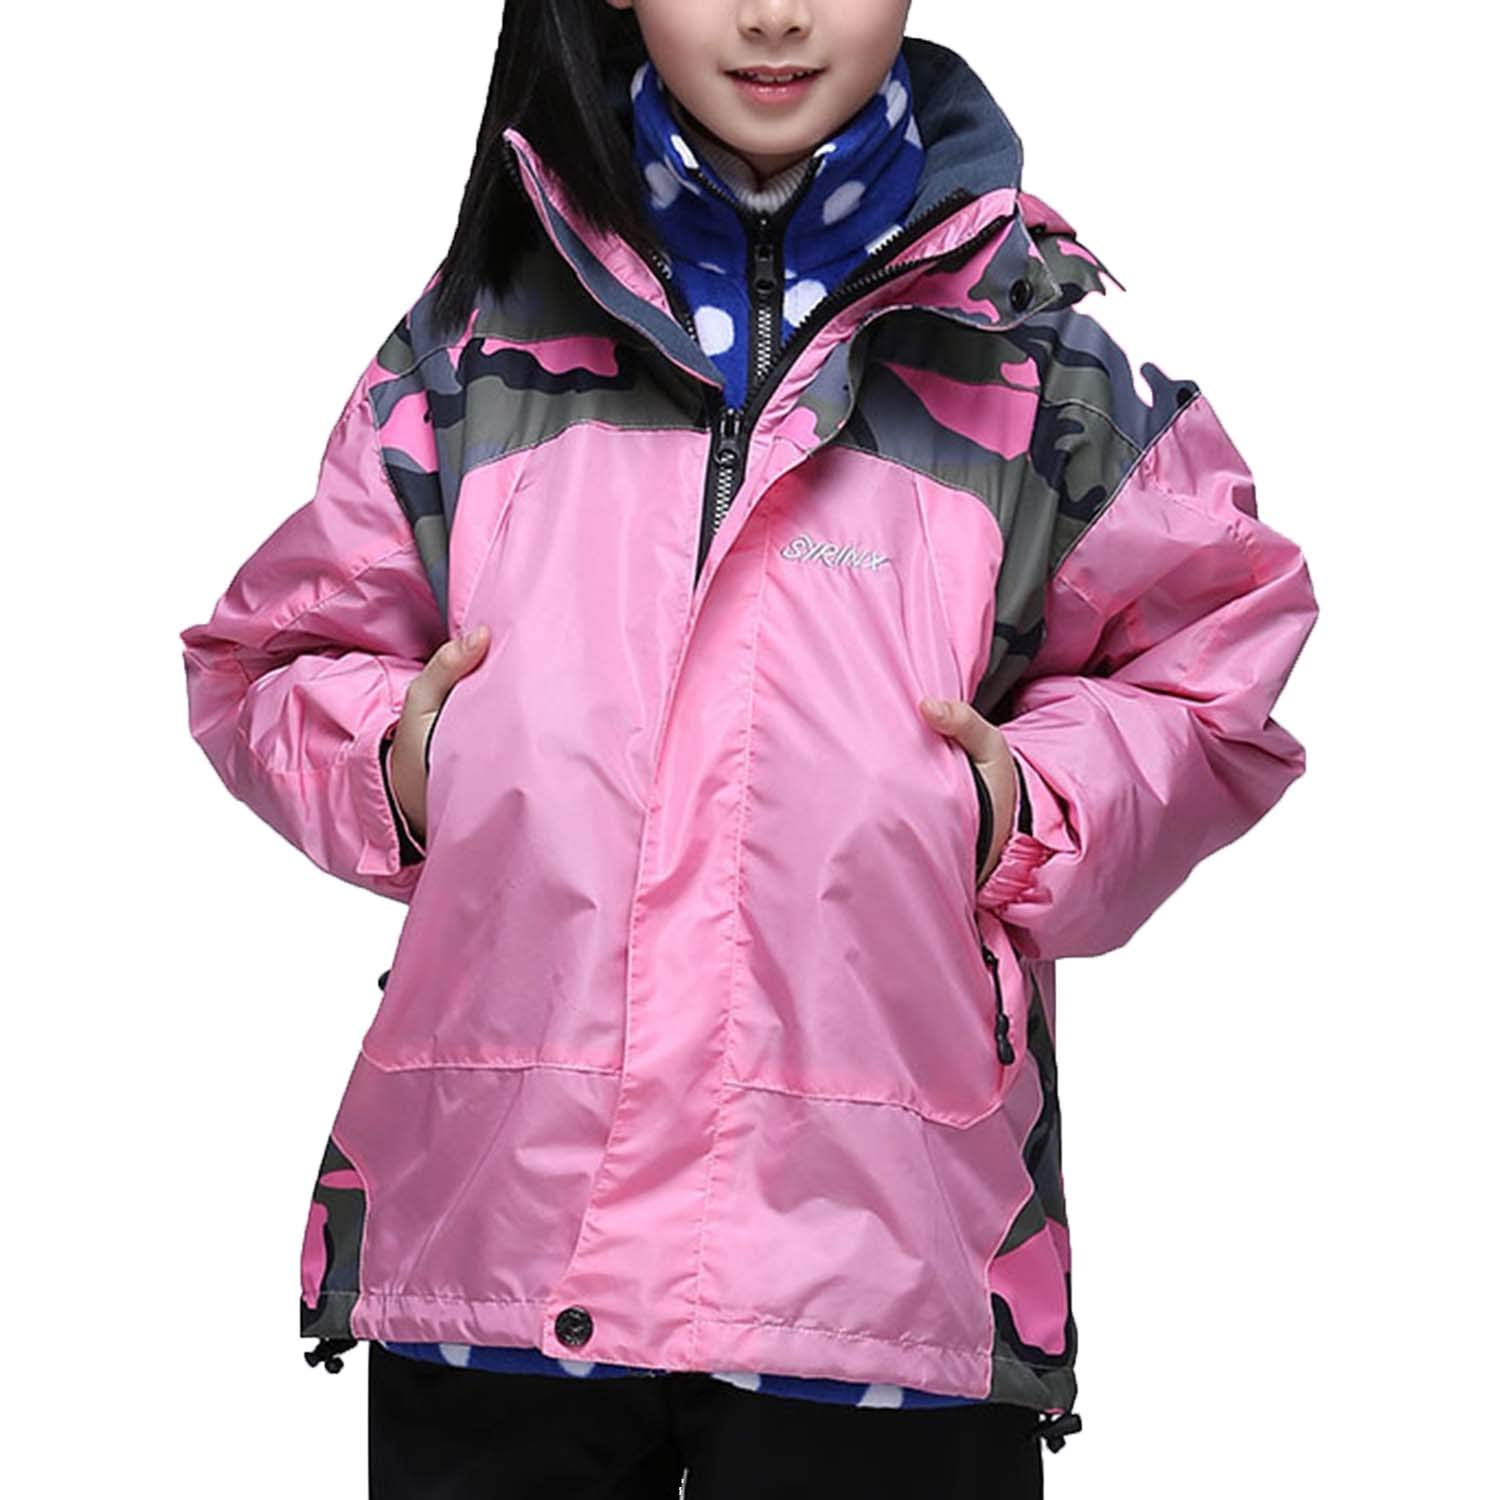 Minghe Kid's 3 in 1 Interchange Windproof Ski Jacket with Fleece Liner